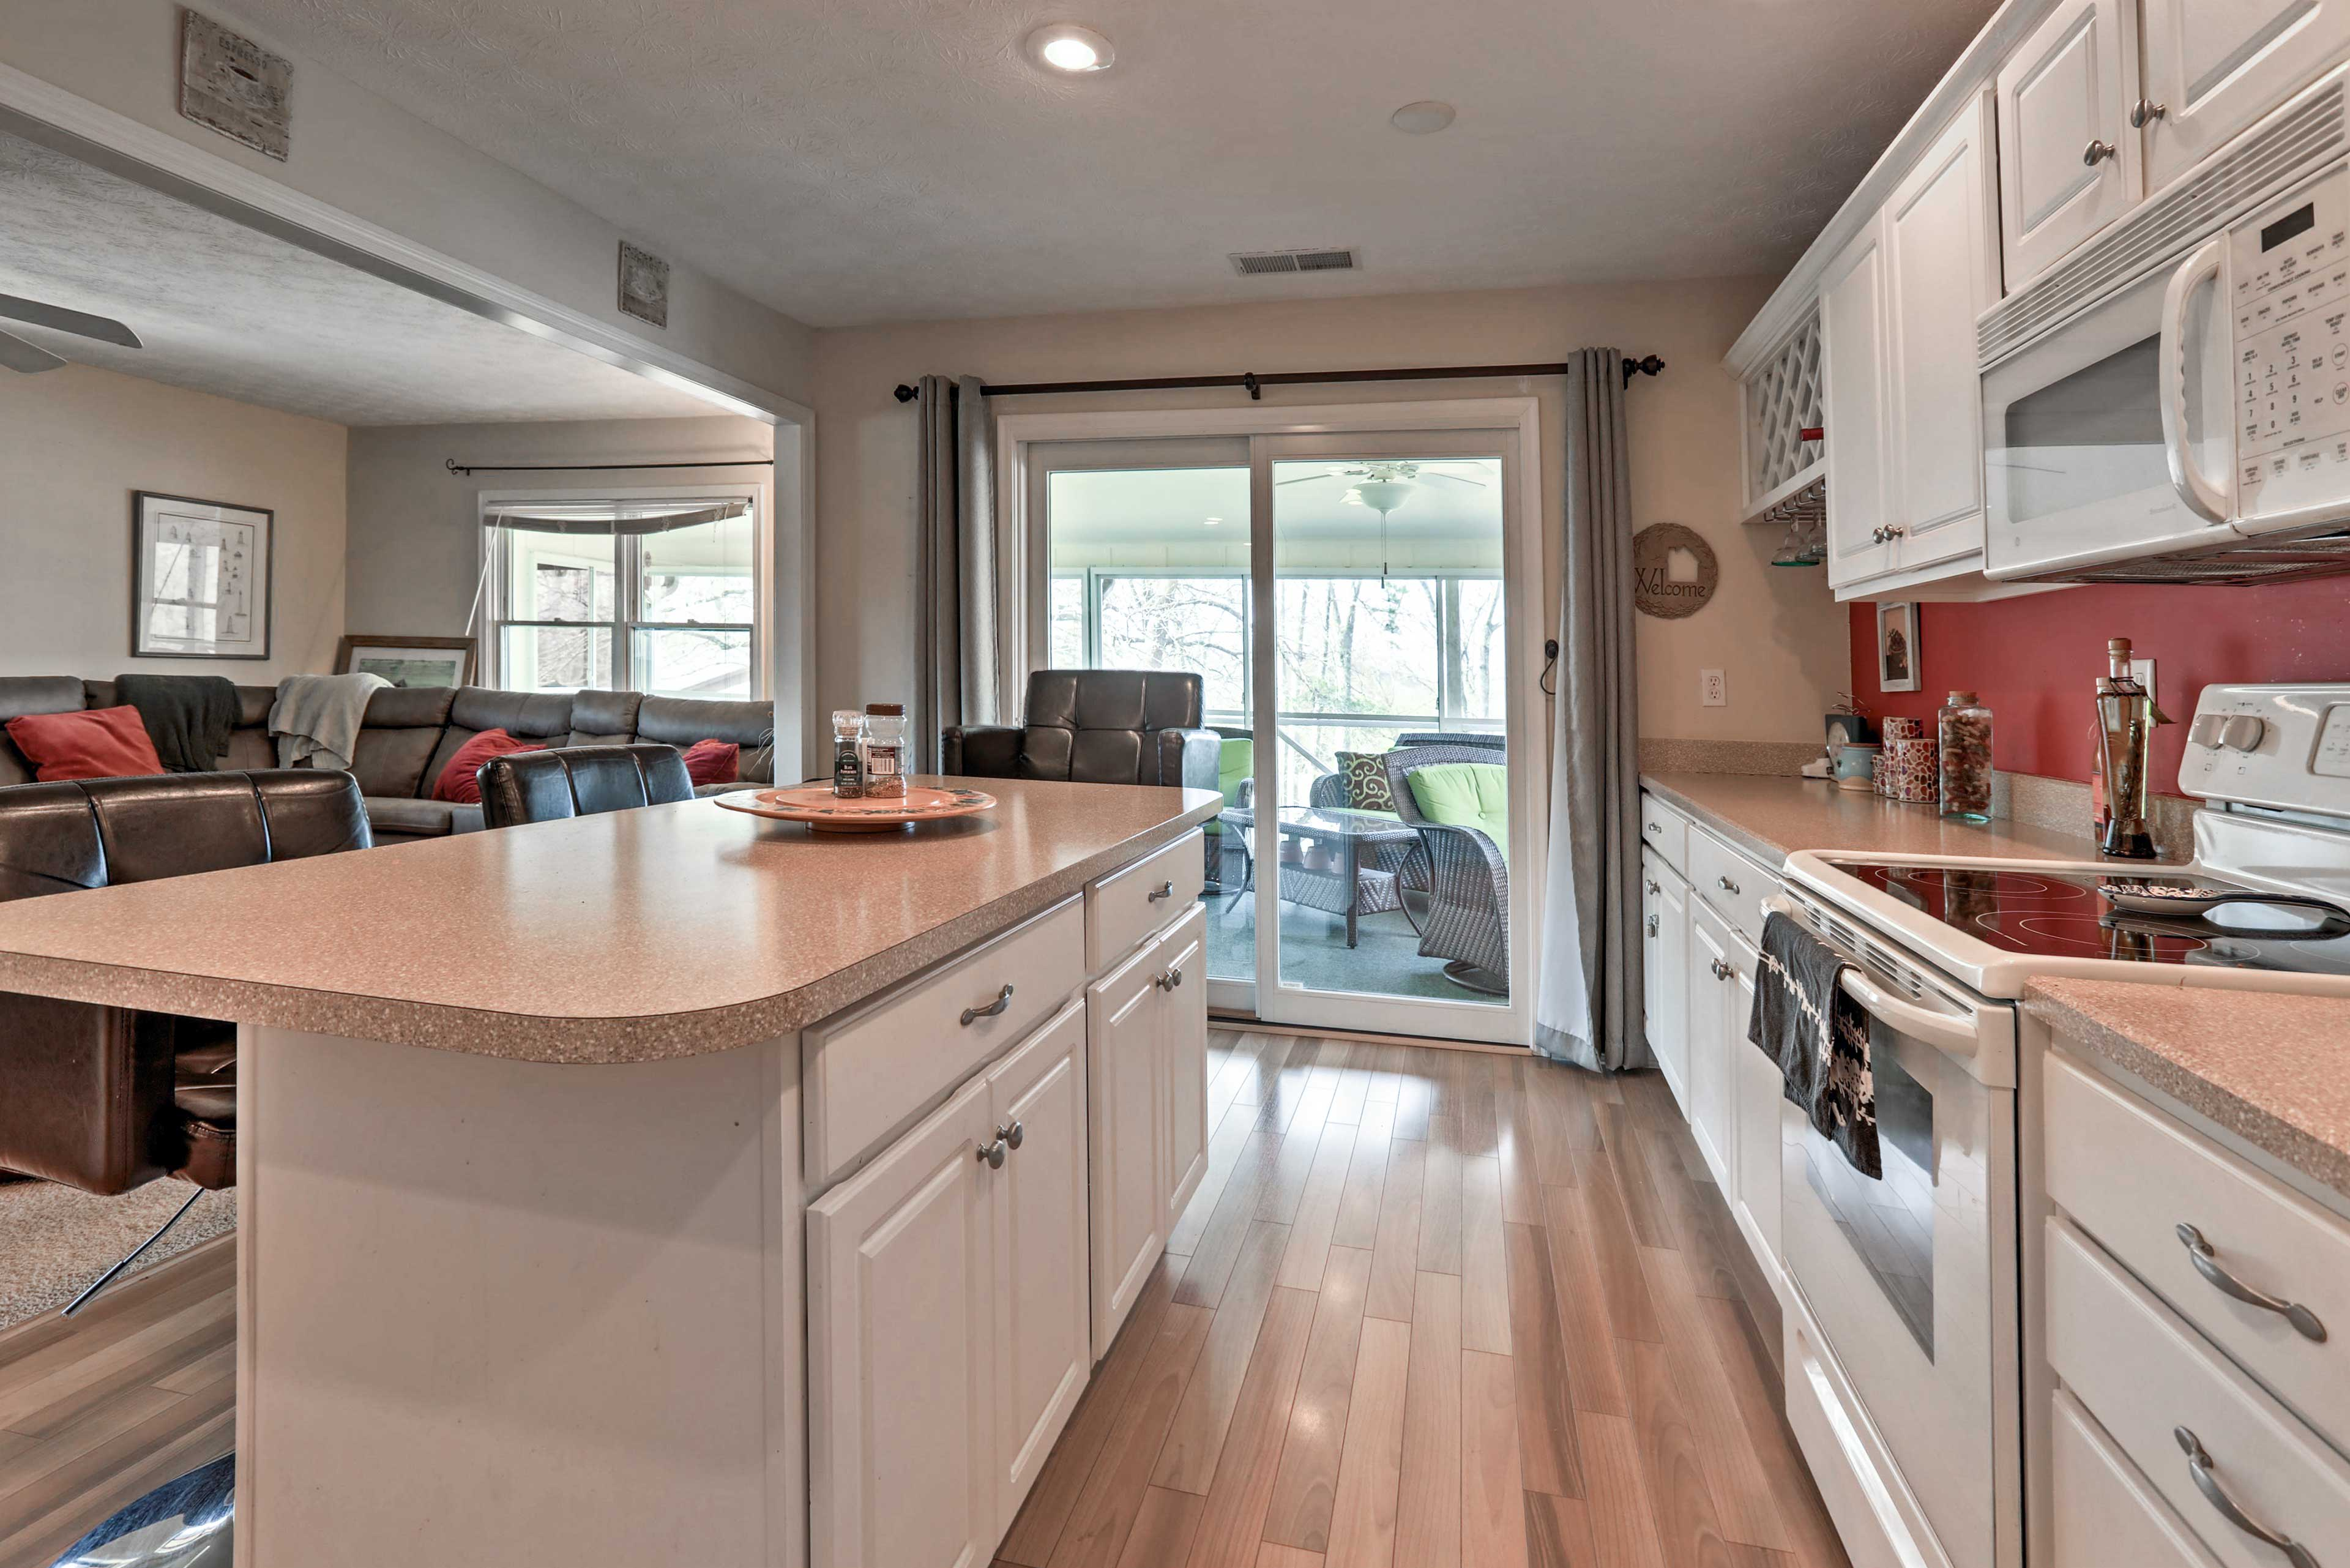 You'll love all the counter space, perfect for preparing your favorite meals.